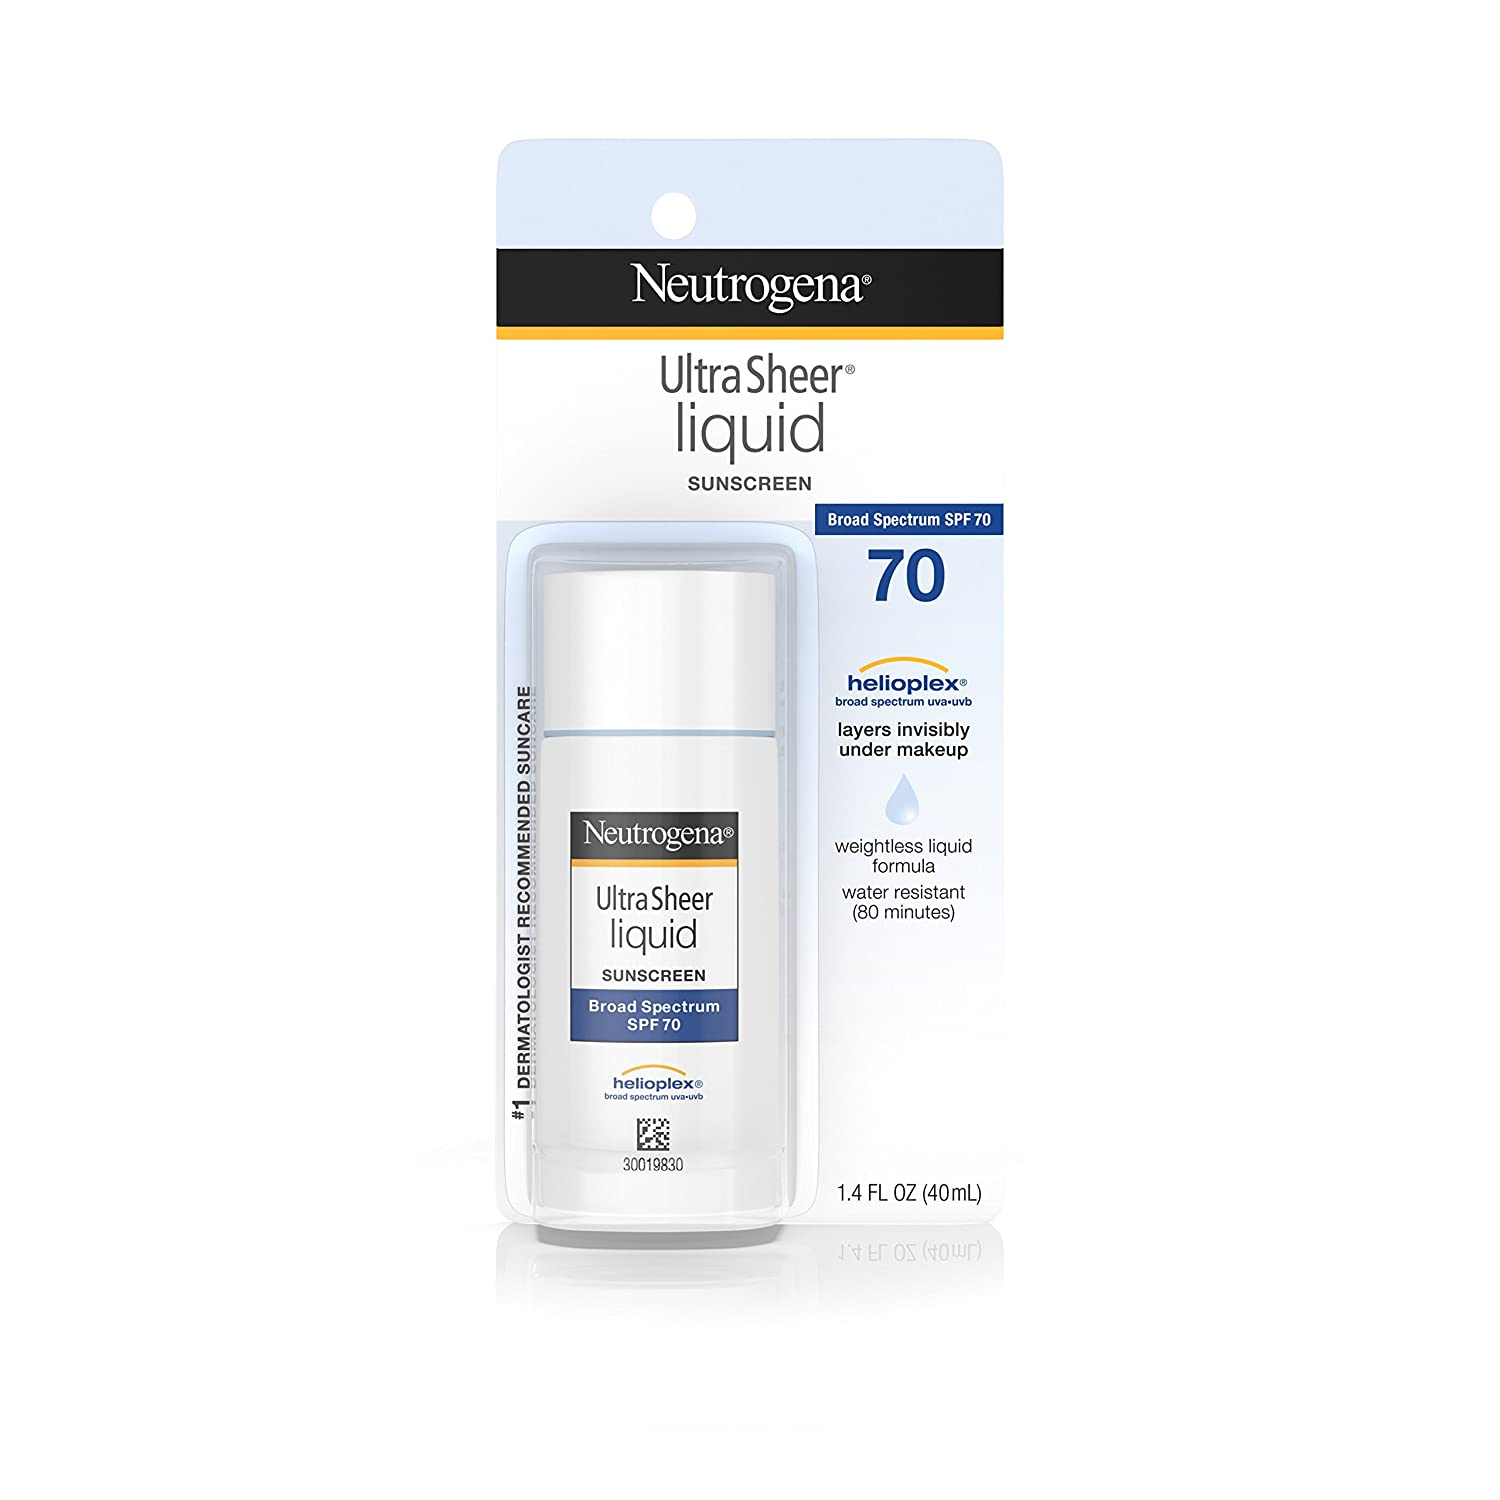 Neutrogena Ultra Sheer Liquid Sunblock, SPF 70, 41 ml J&J426676